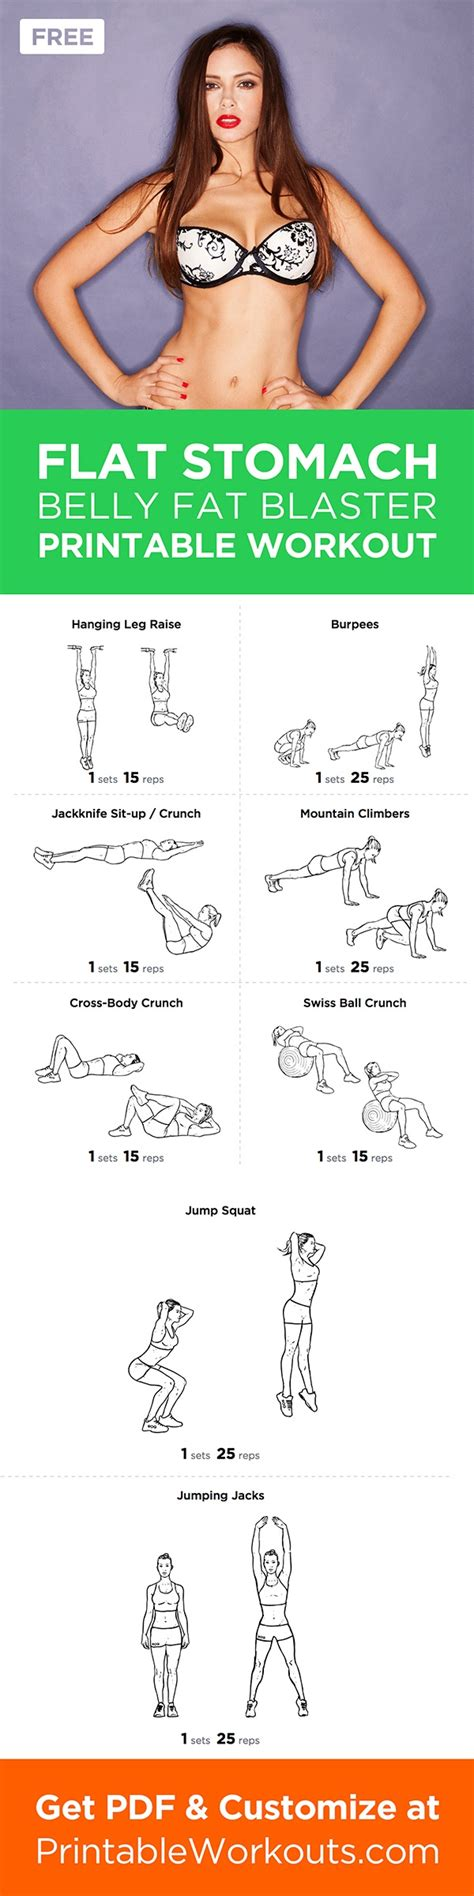 flat stomach inspiremyworkout a collection of